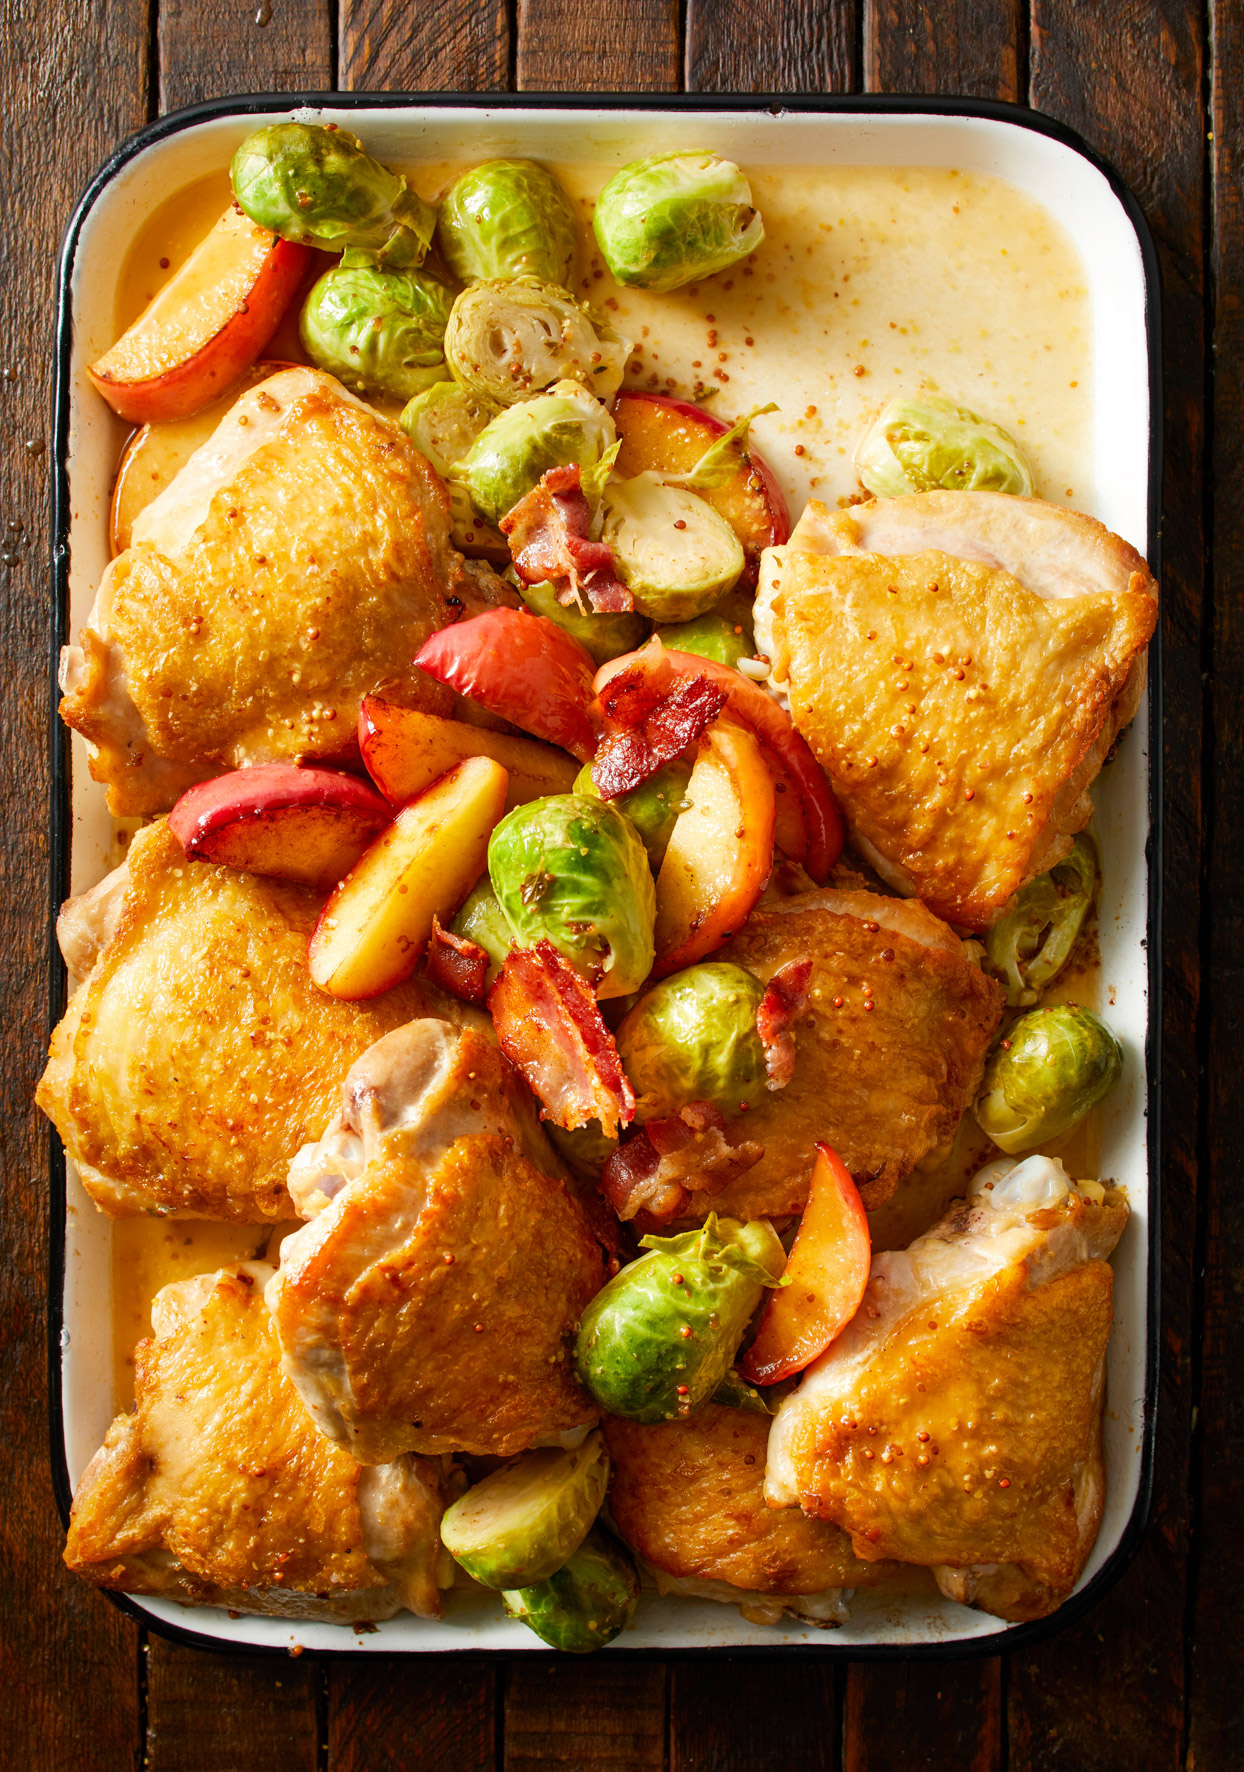 Roasting pan with Cider-Braised Chicken, Brussels Sprouts and Apples